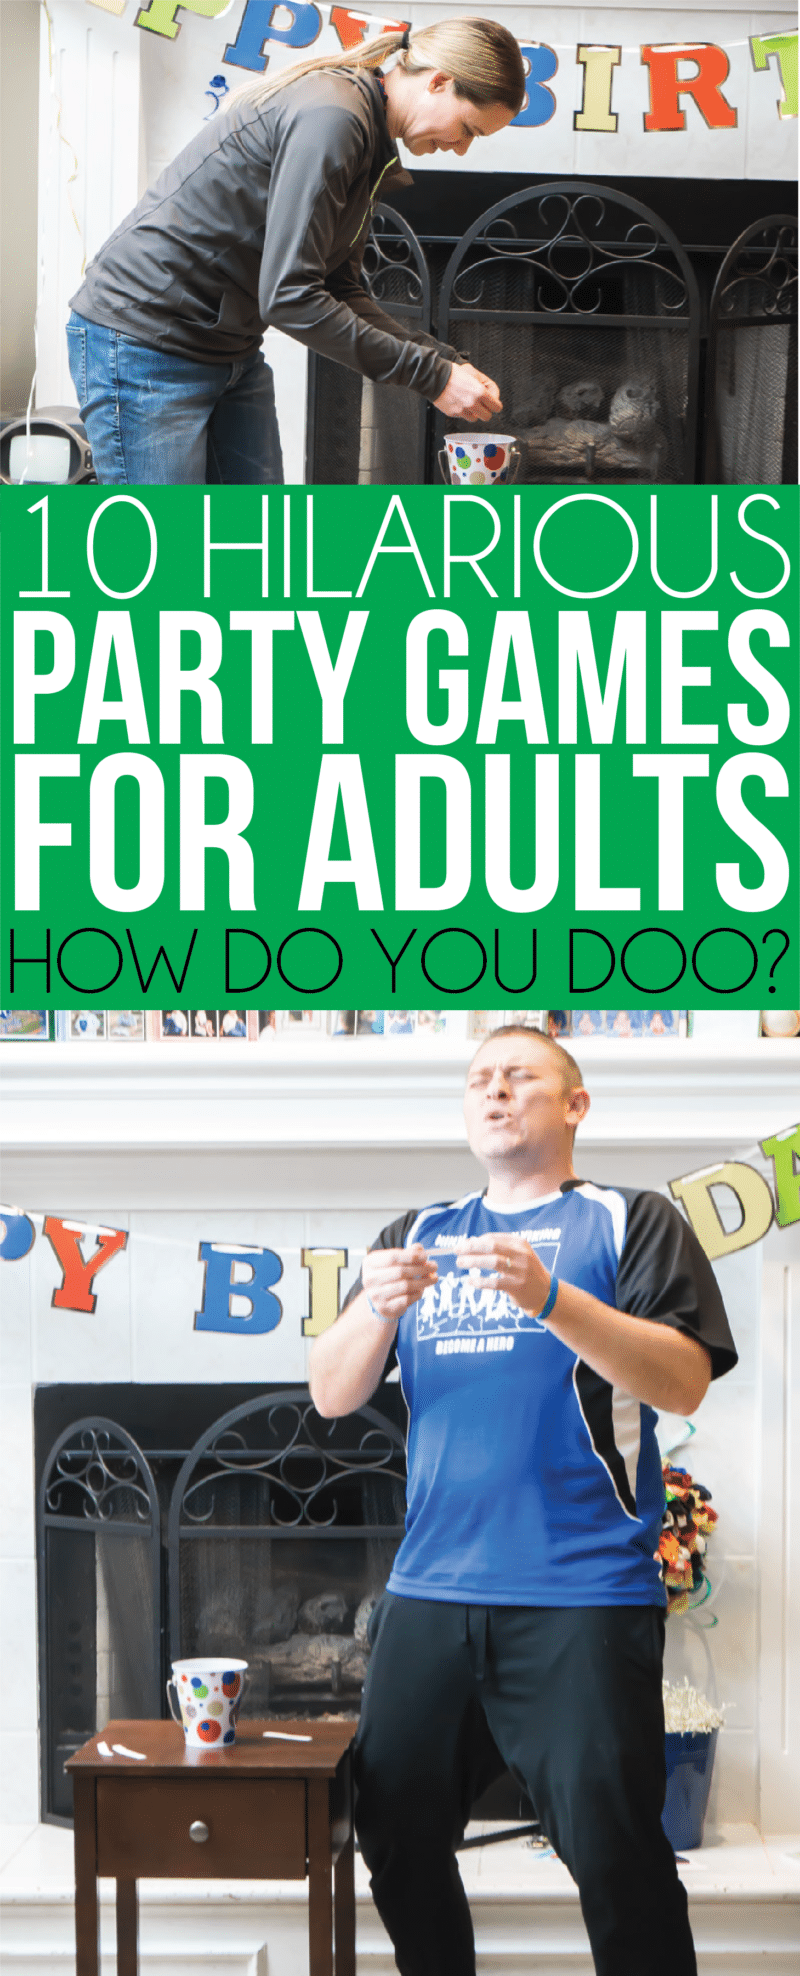 19 Hilarious Party Games for Adults Party games group